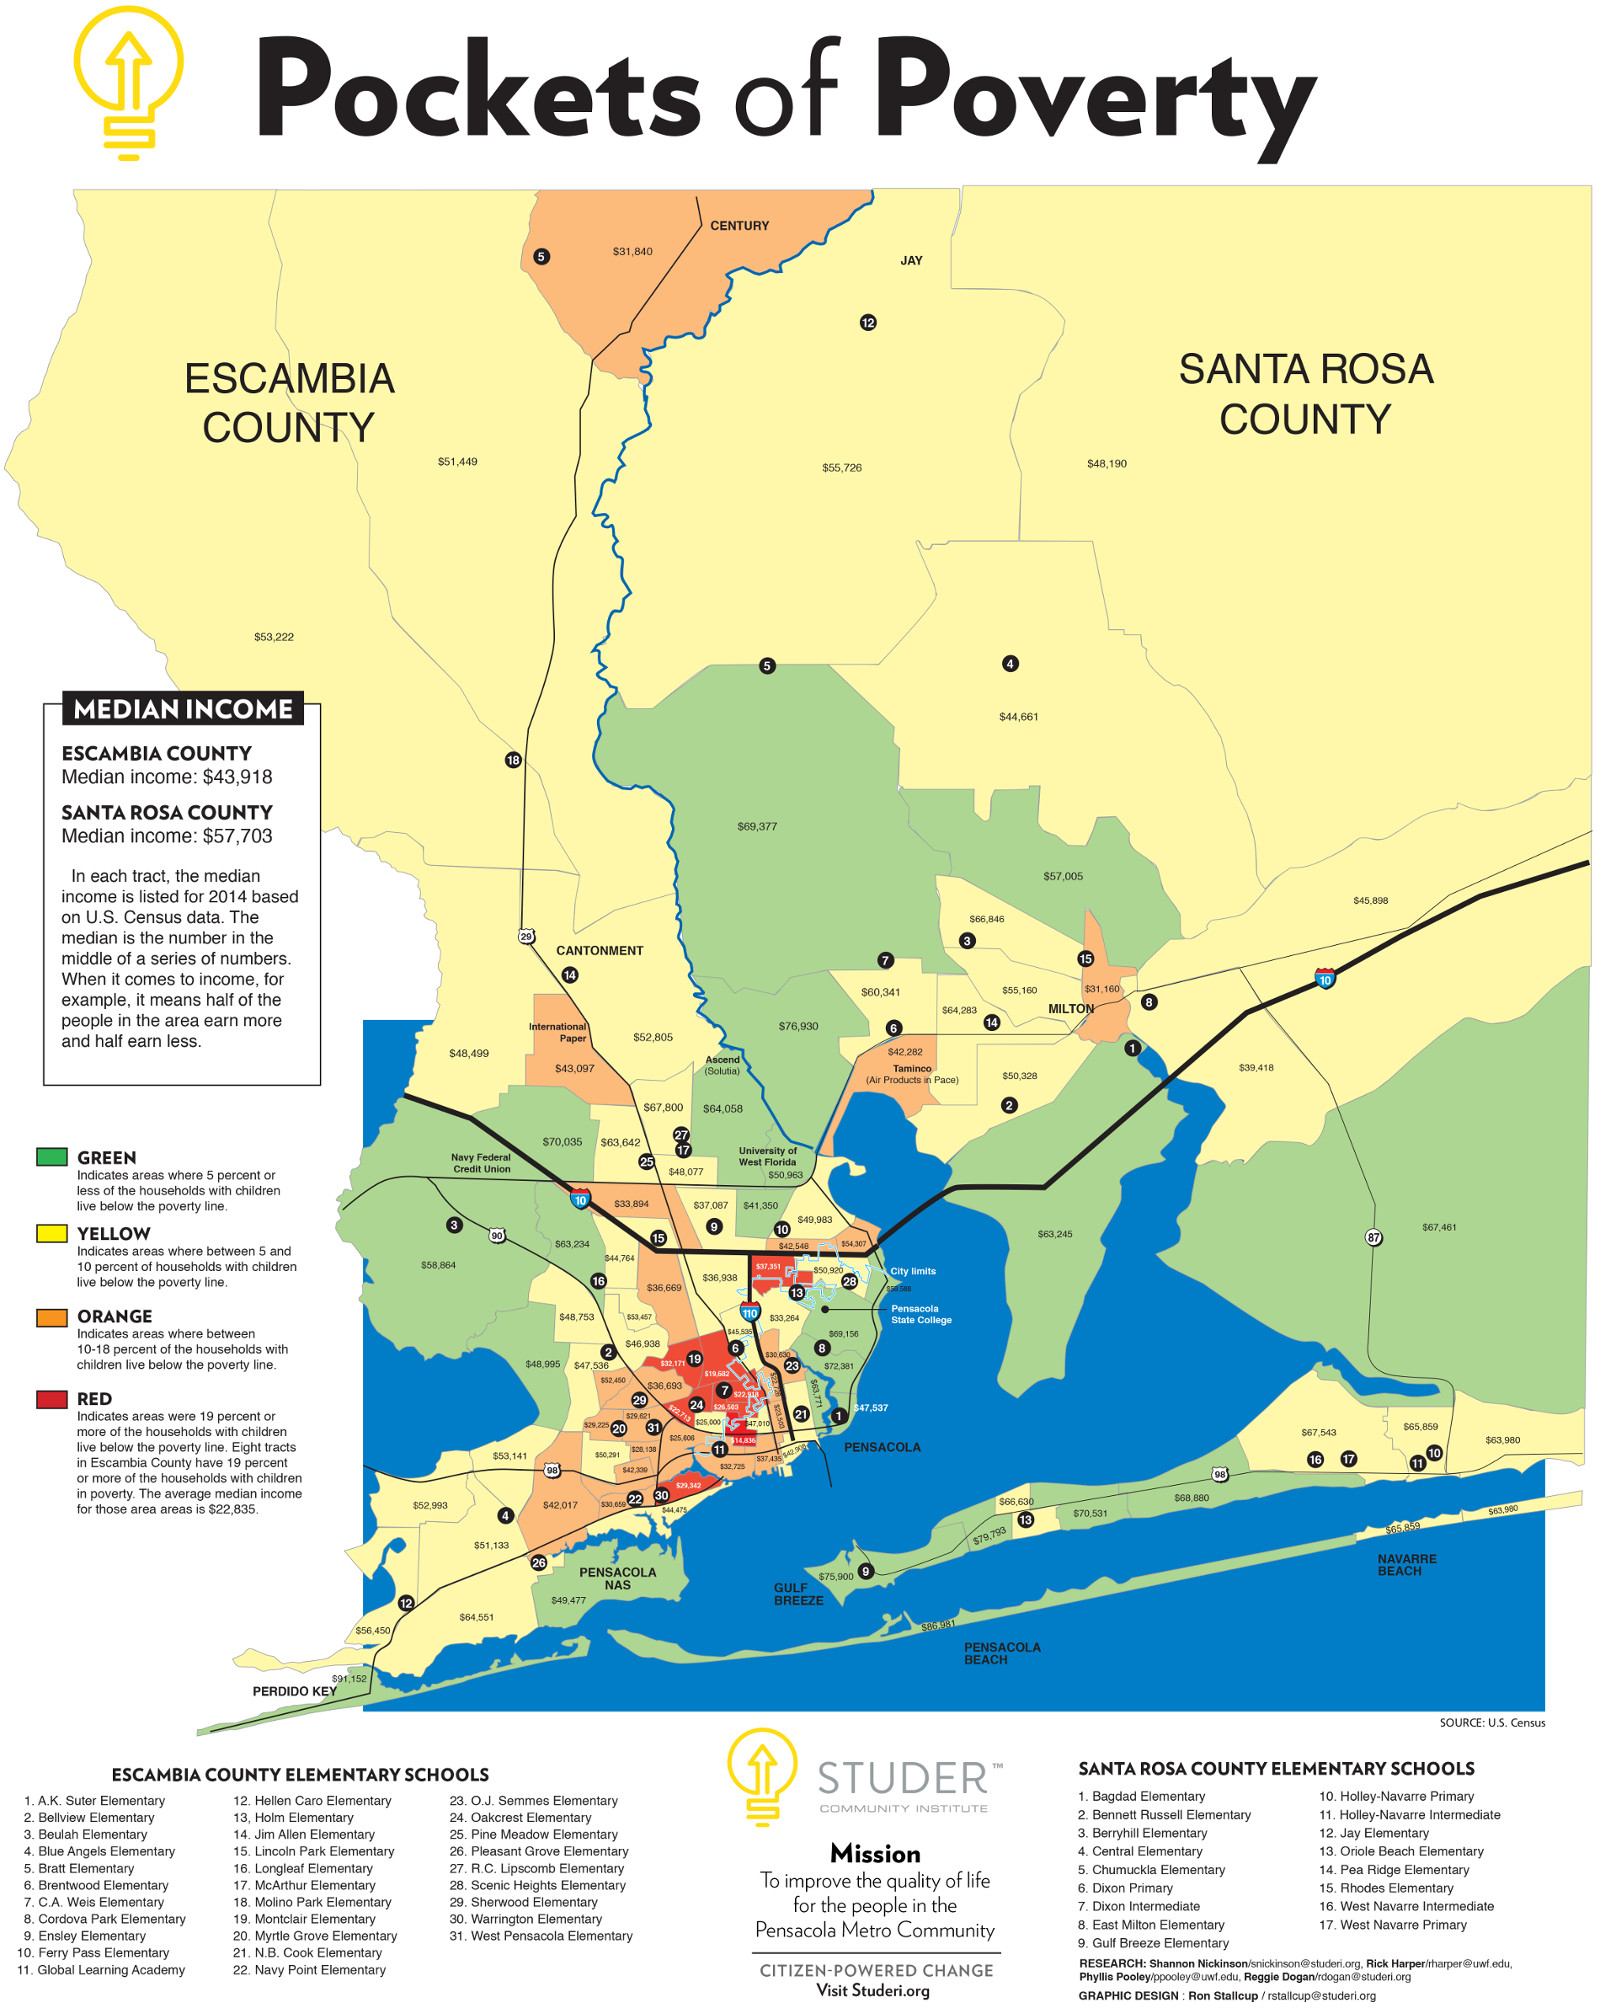 A map of Escambia County showing areas of poverty